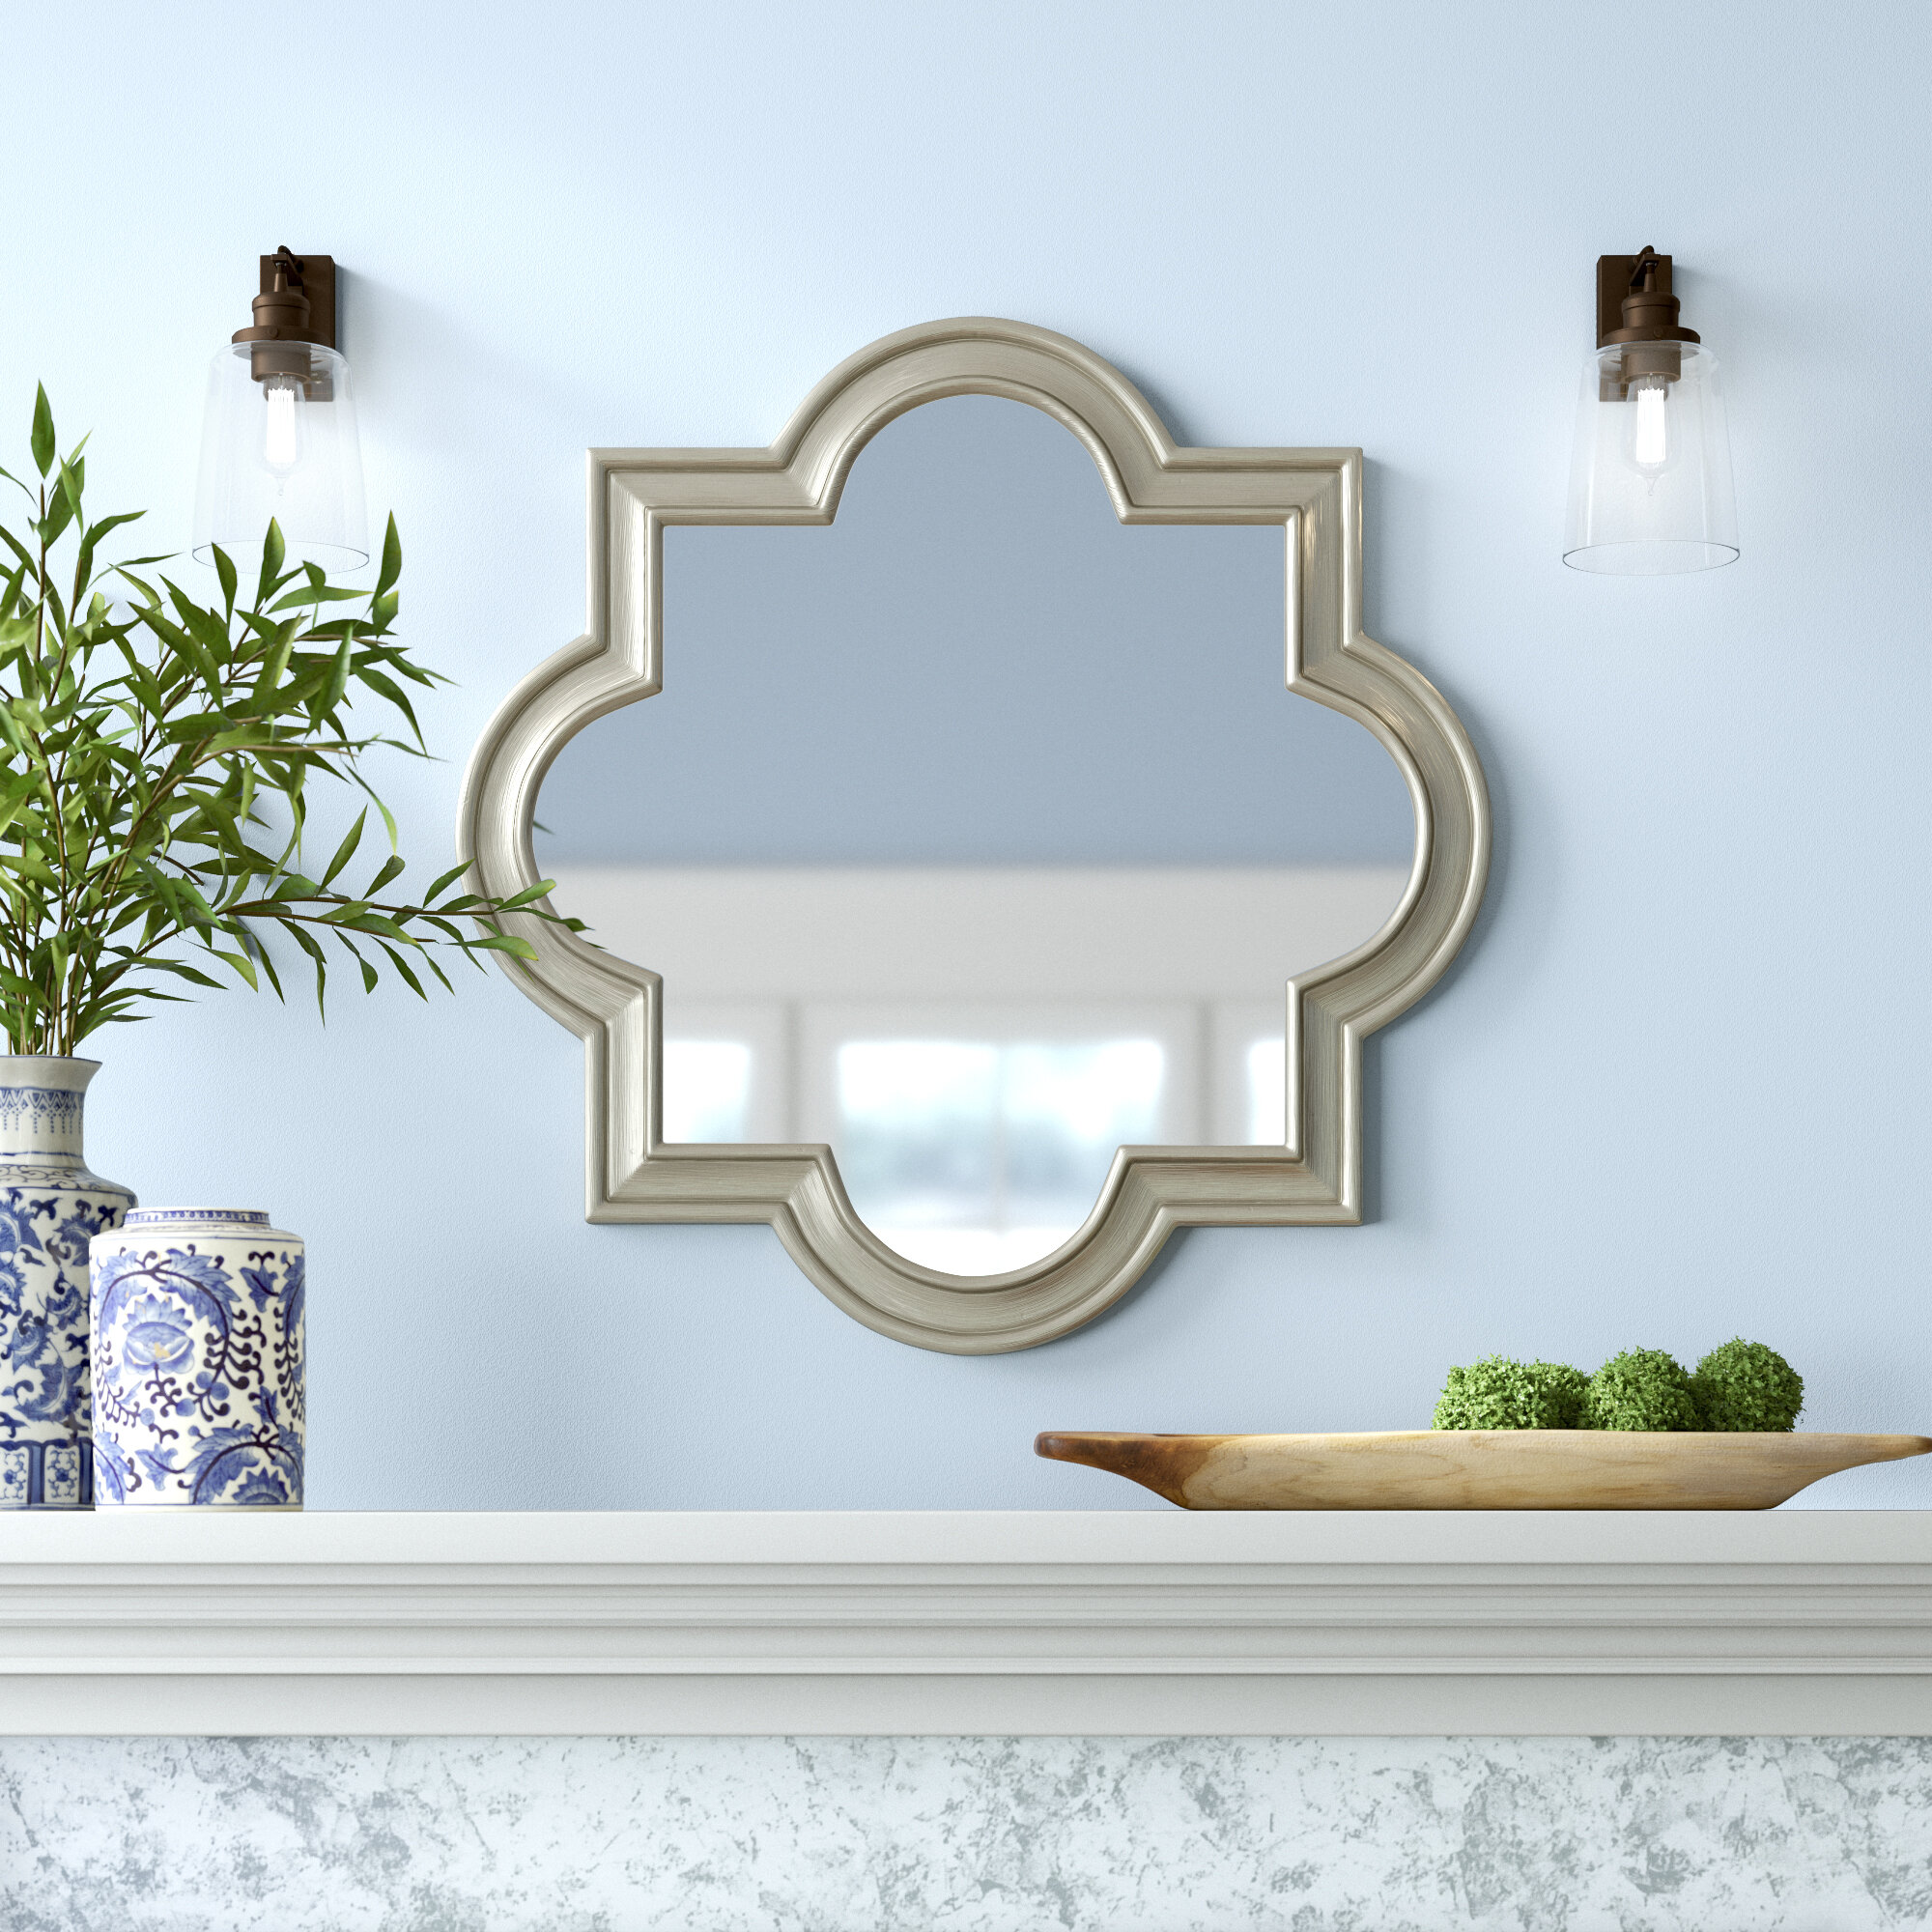 Daisi Arch/Crowned Champagne Top Wall Accent Mirror